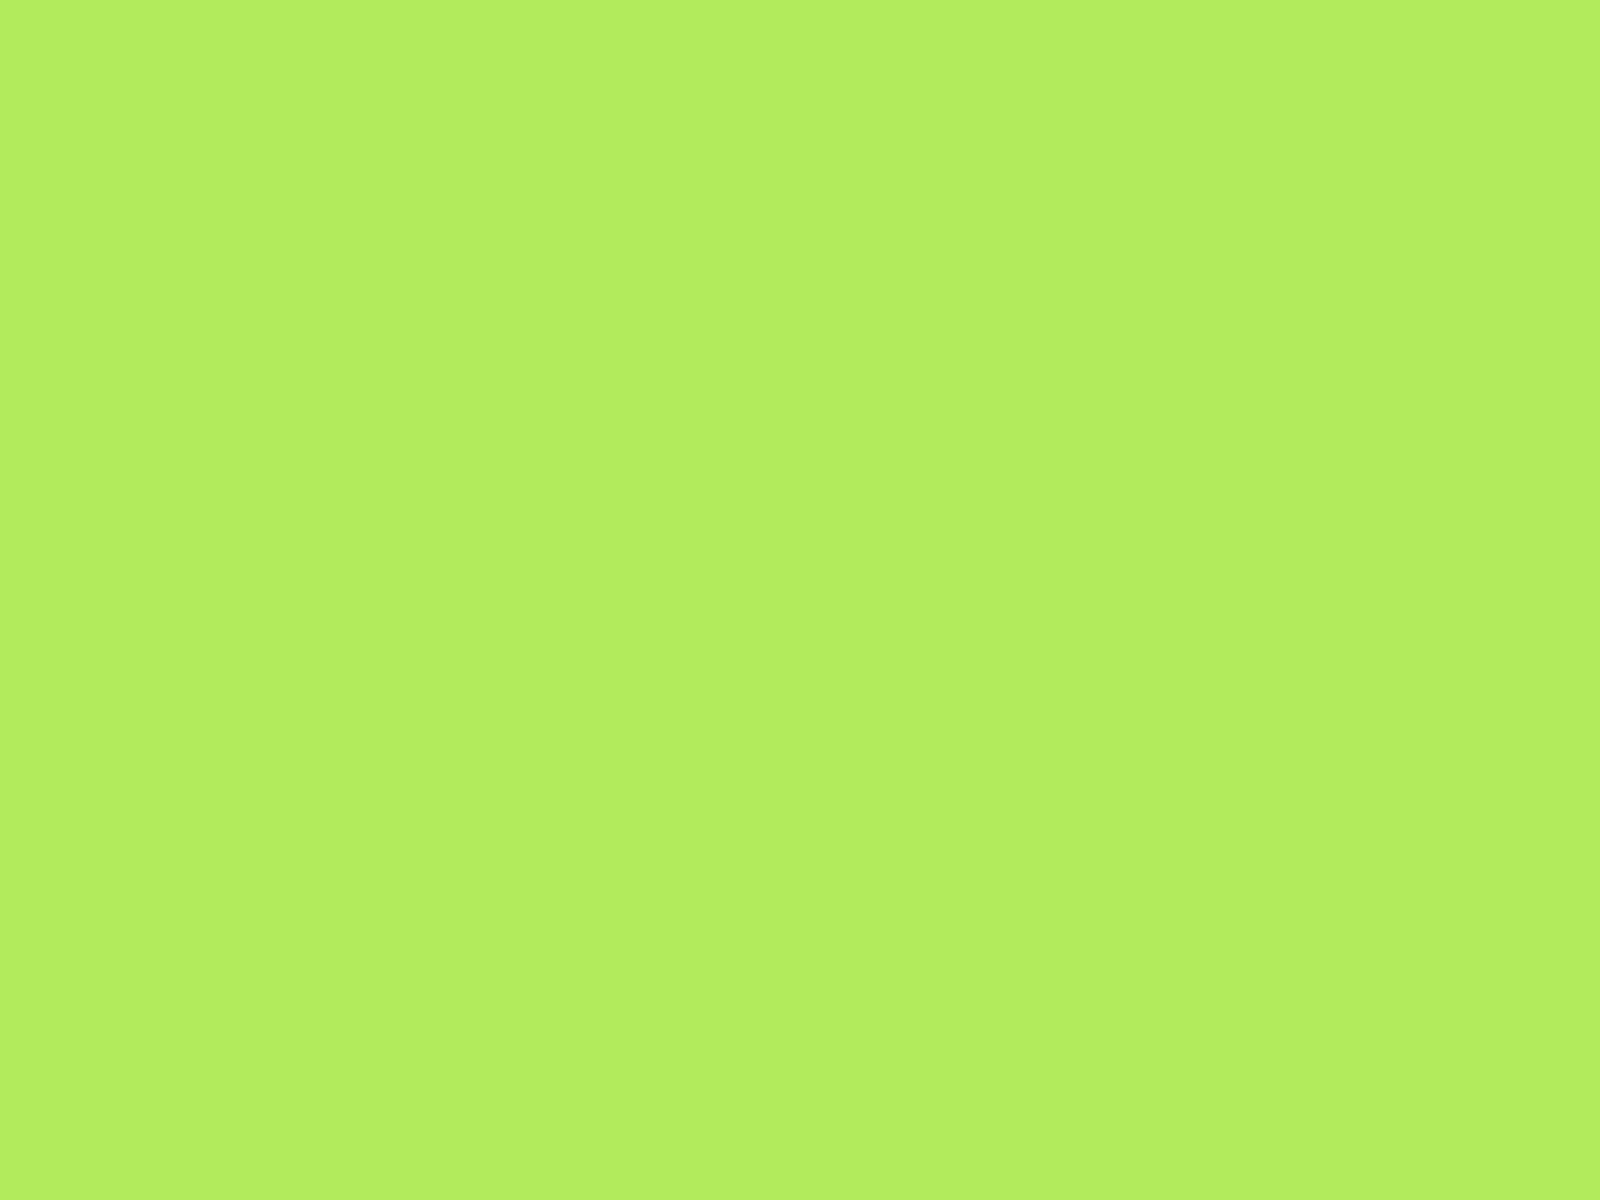 1600x1200 Inchworm Solid Color Background